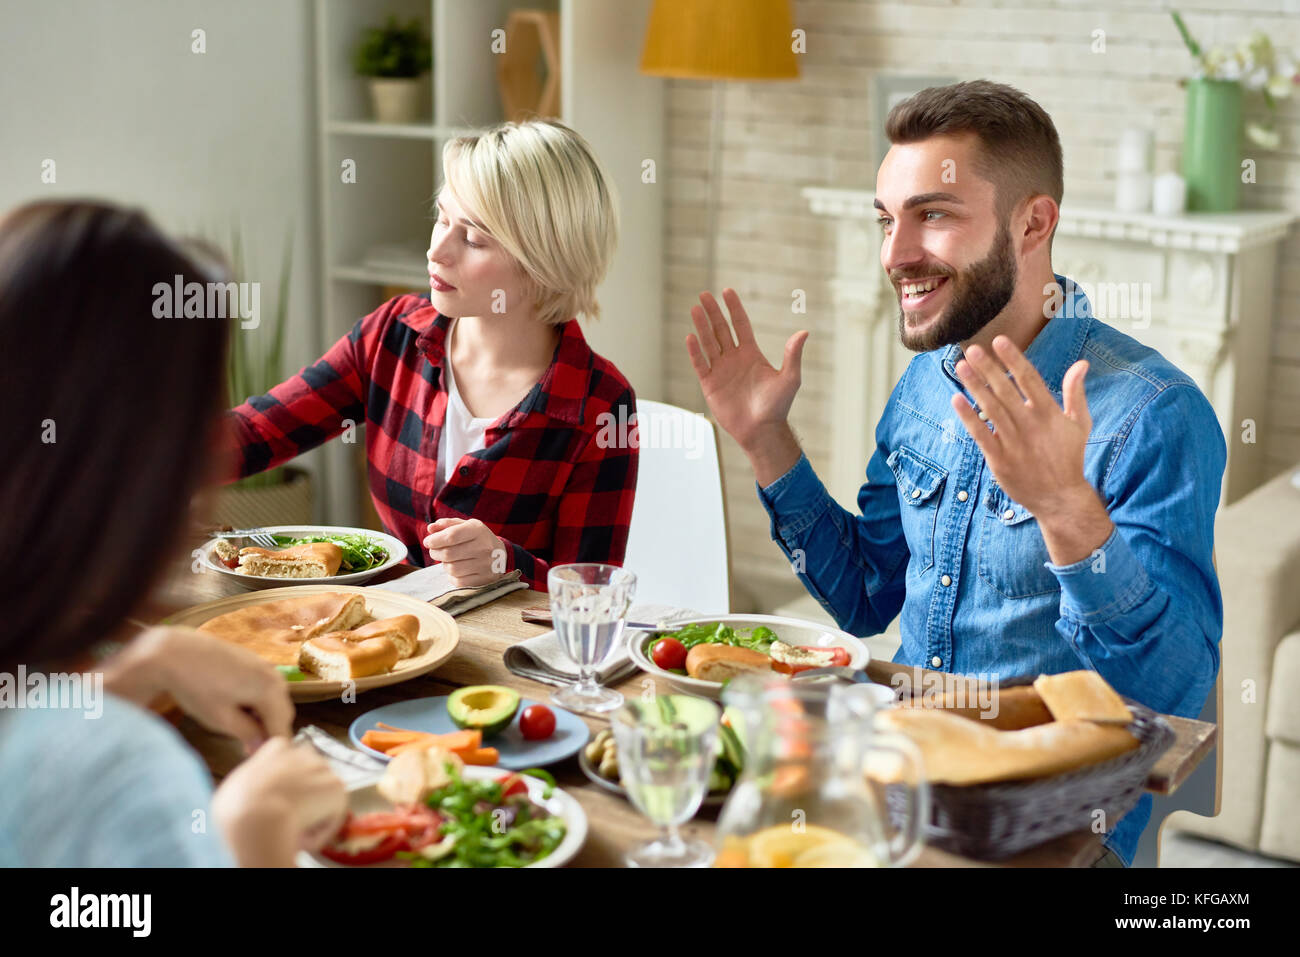 Happy Man Telling Stories at Dinner Table - Stock Image